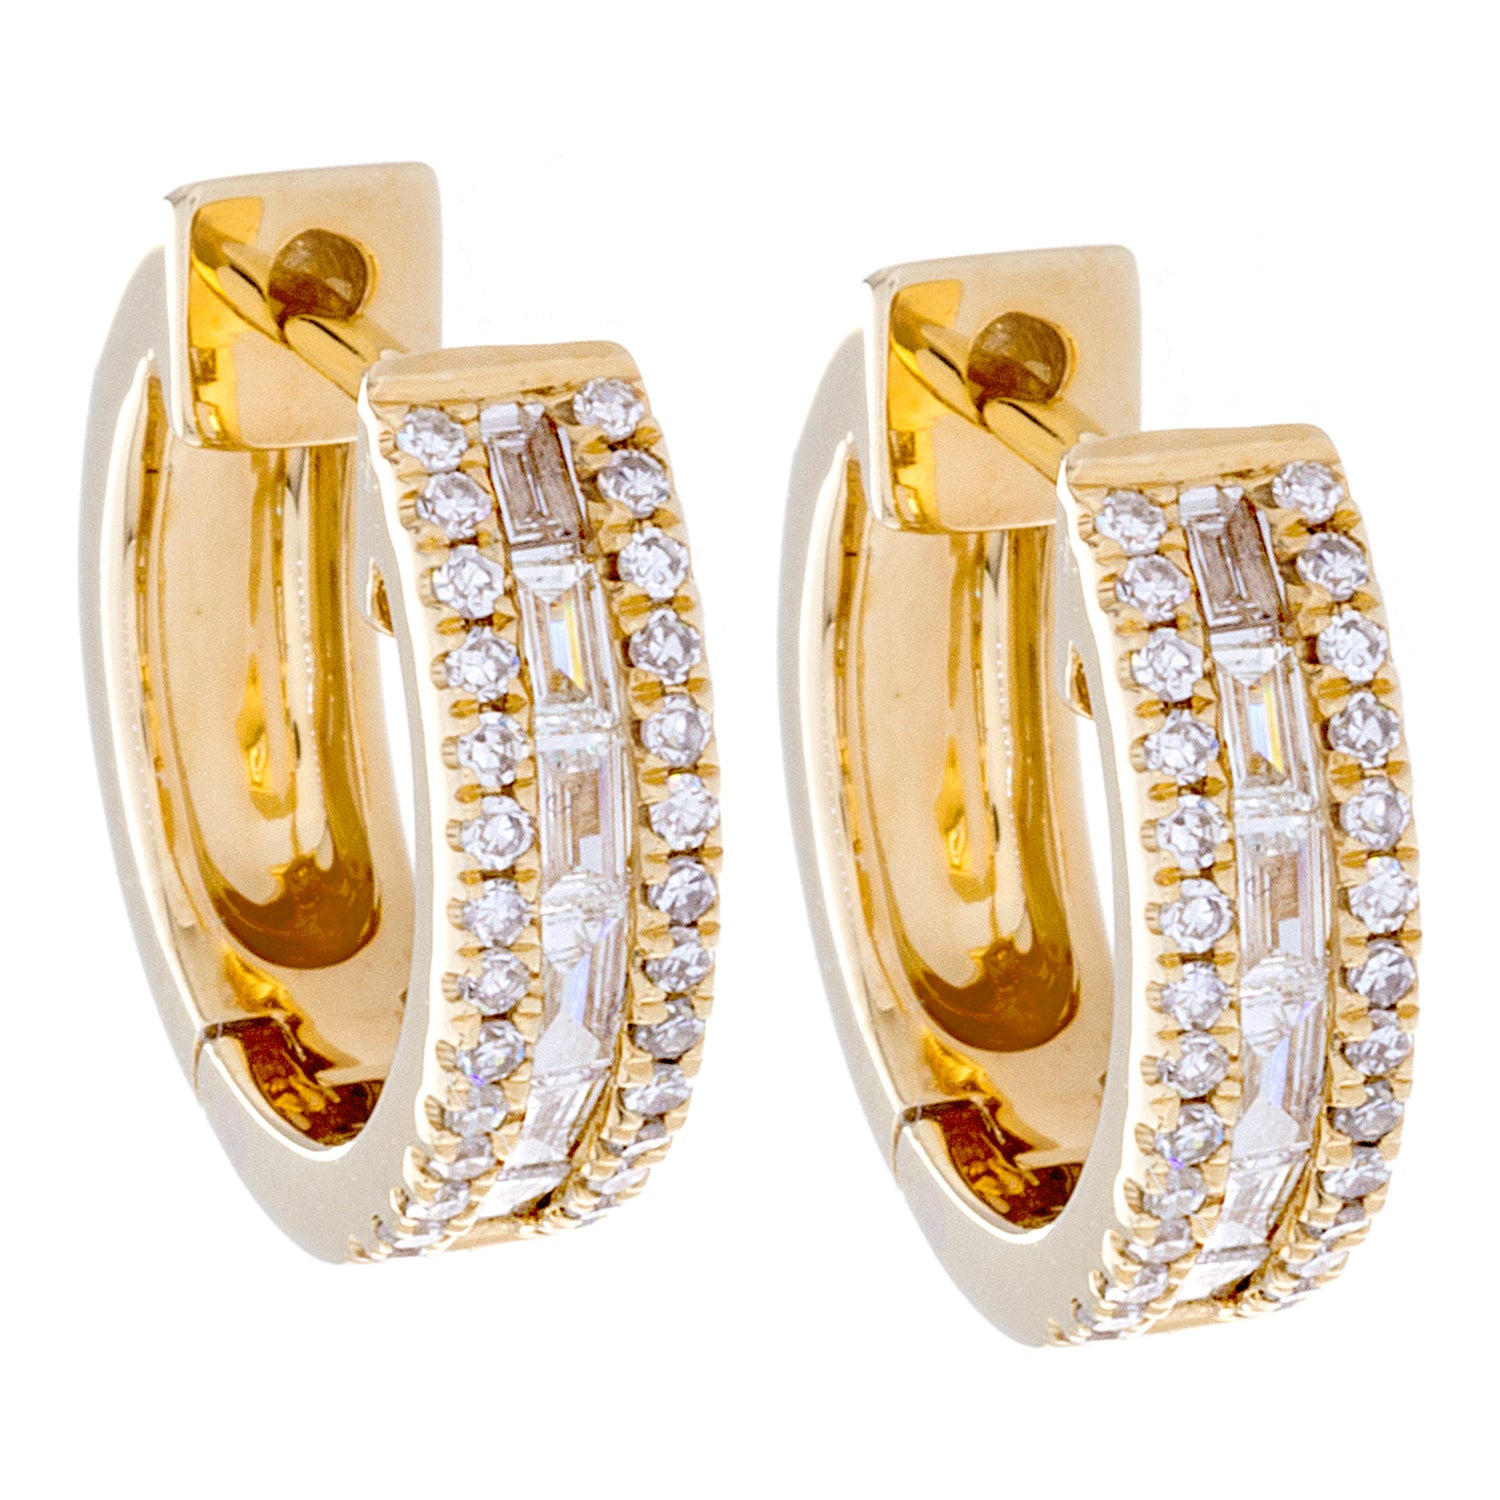 Diamonds & 14K Yellow Gold Earrings - SOLD